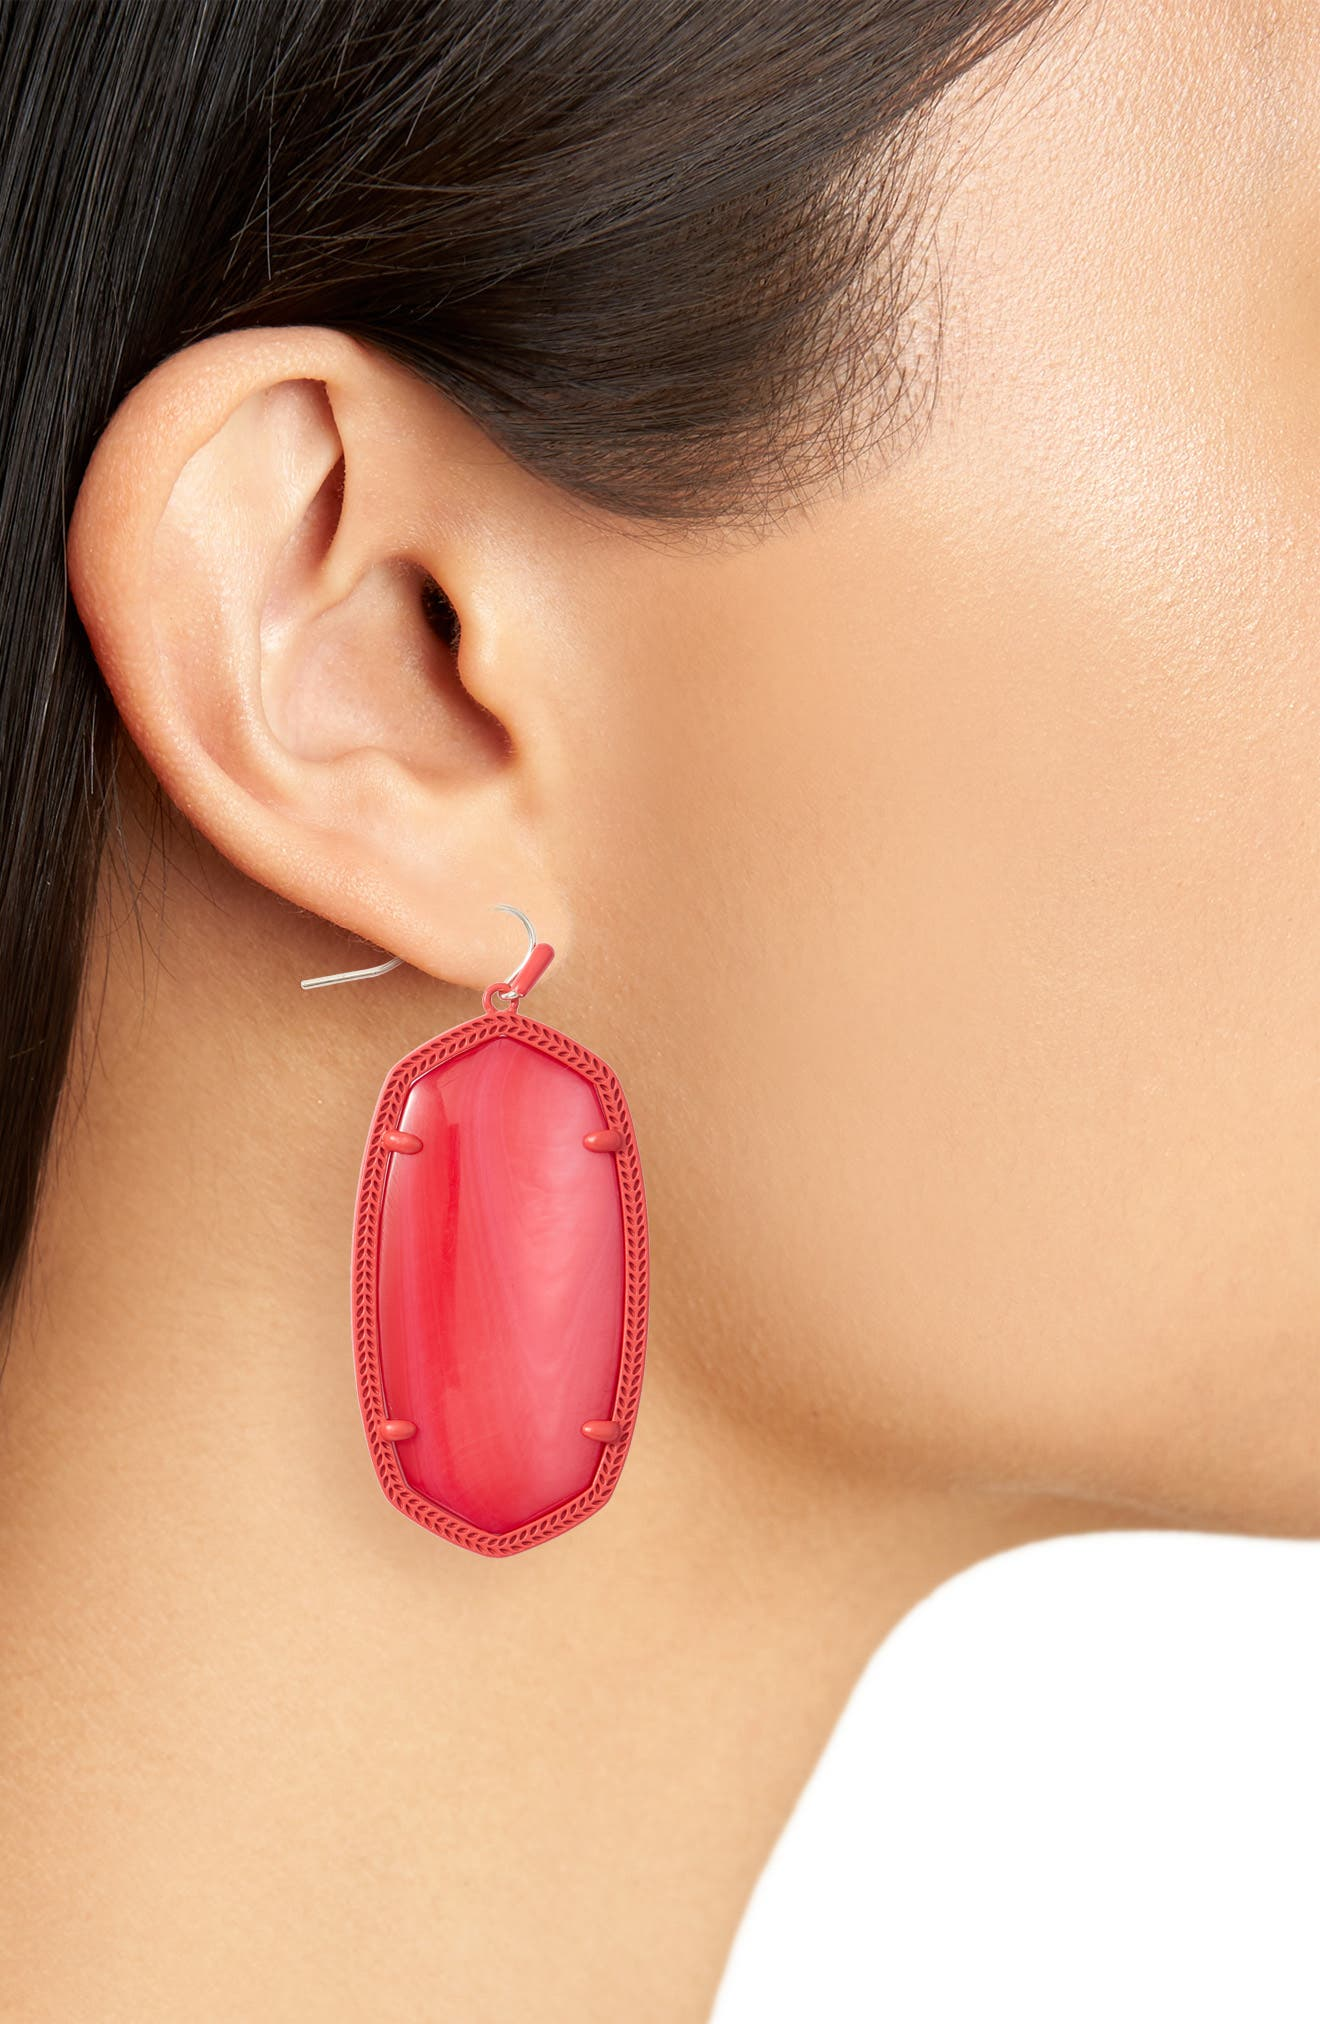 Danielle - Large Oval Statement Earrings,                             Alternate thumbnail 2, color,                             Red Mop/ Matte Red